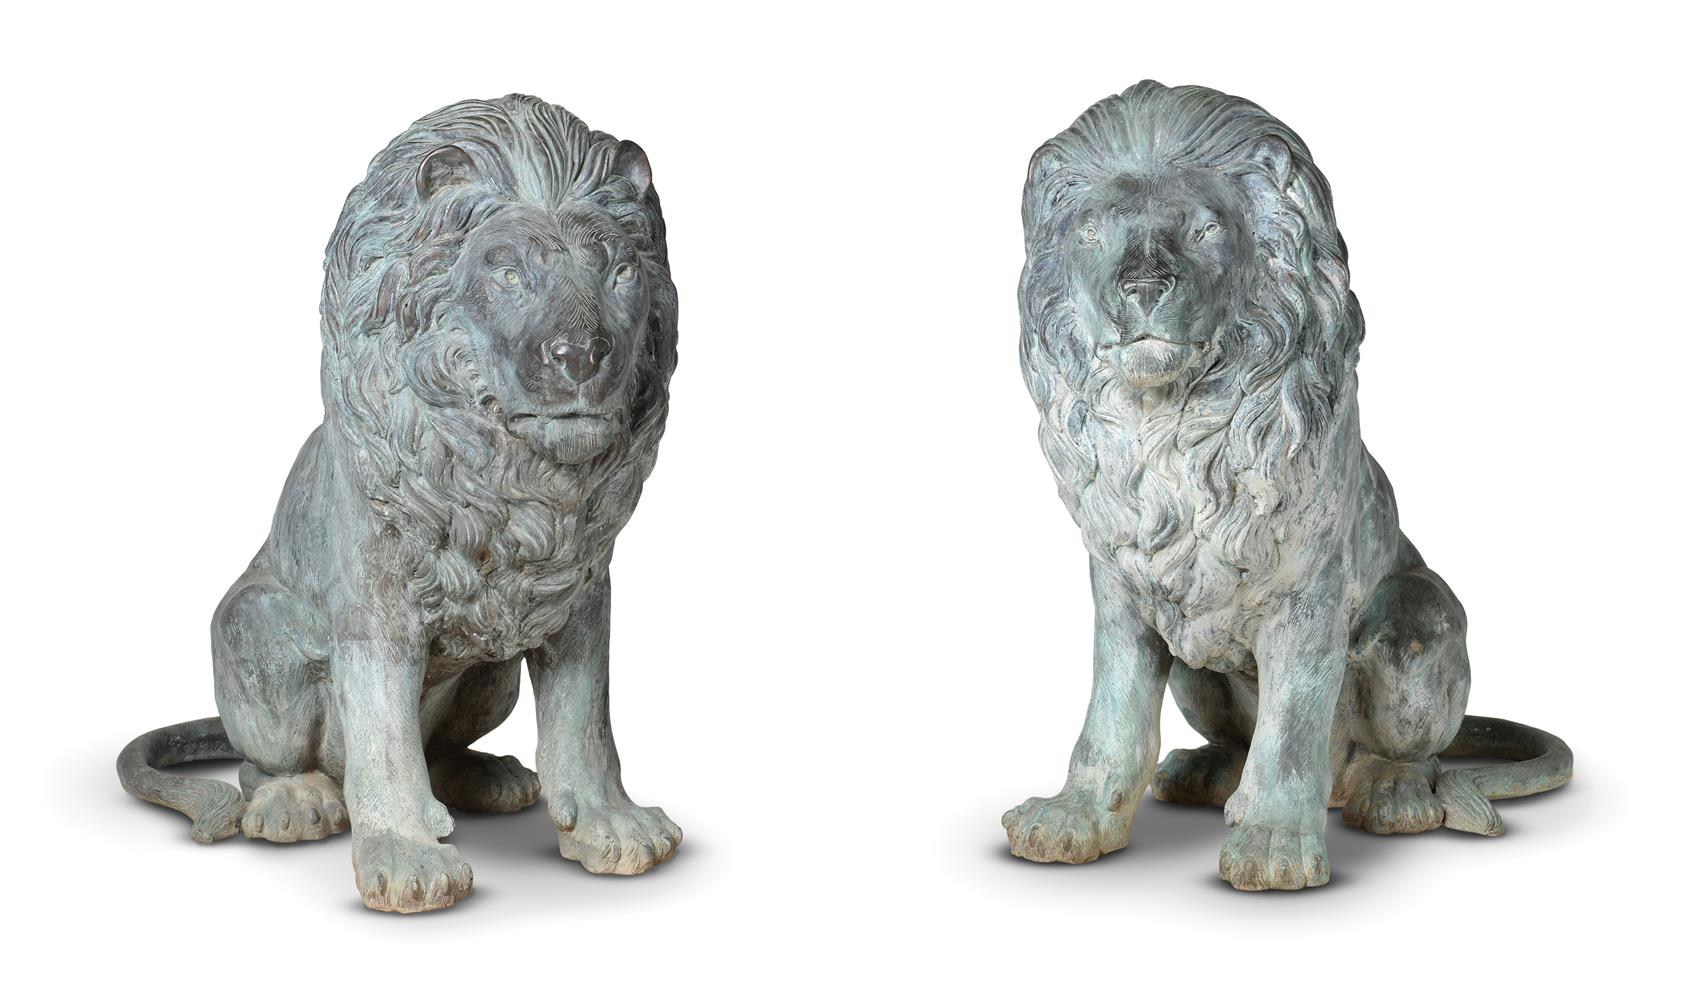 A LARGE PAIR OF BRONZE LIONS, OF RECENT MANUFACTURE - Image 2 of 4